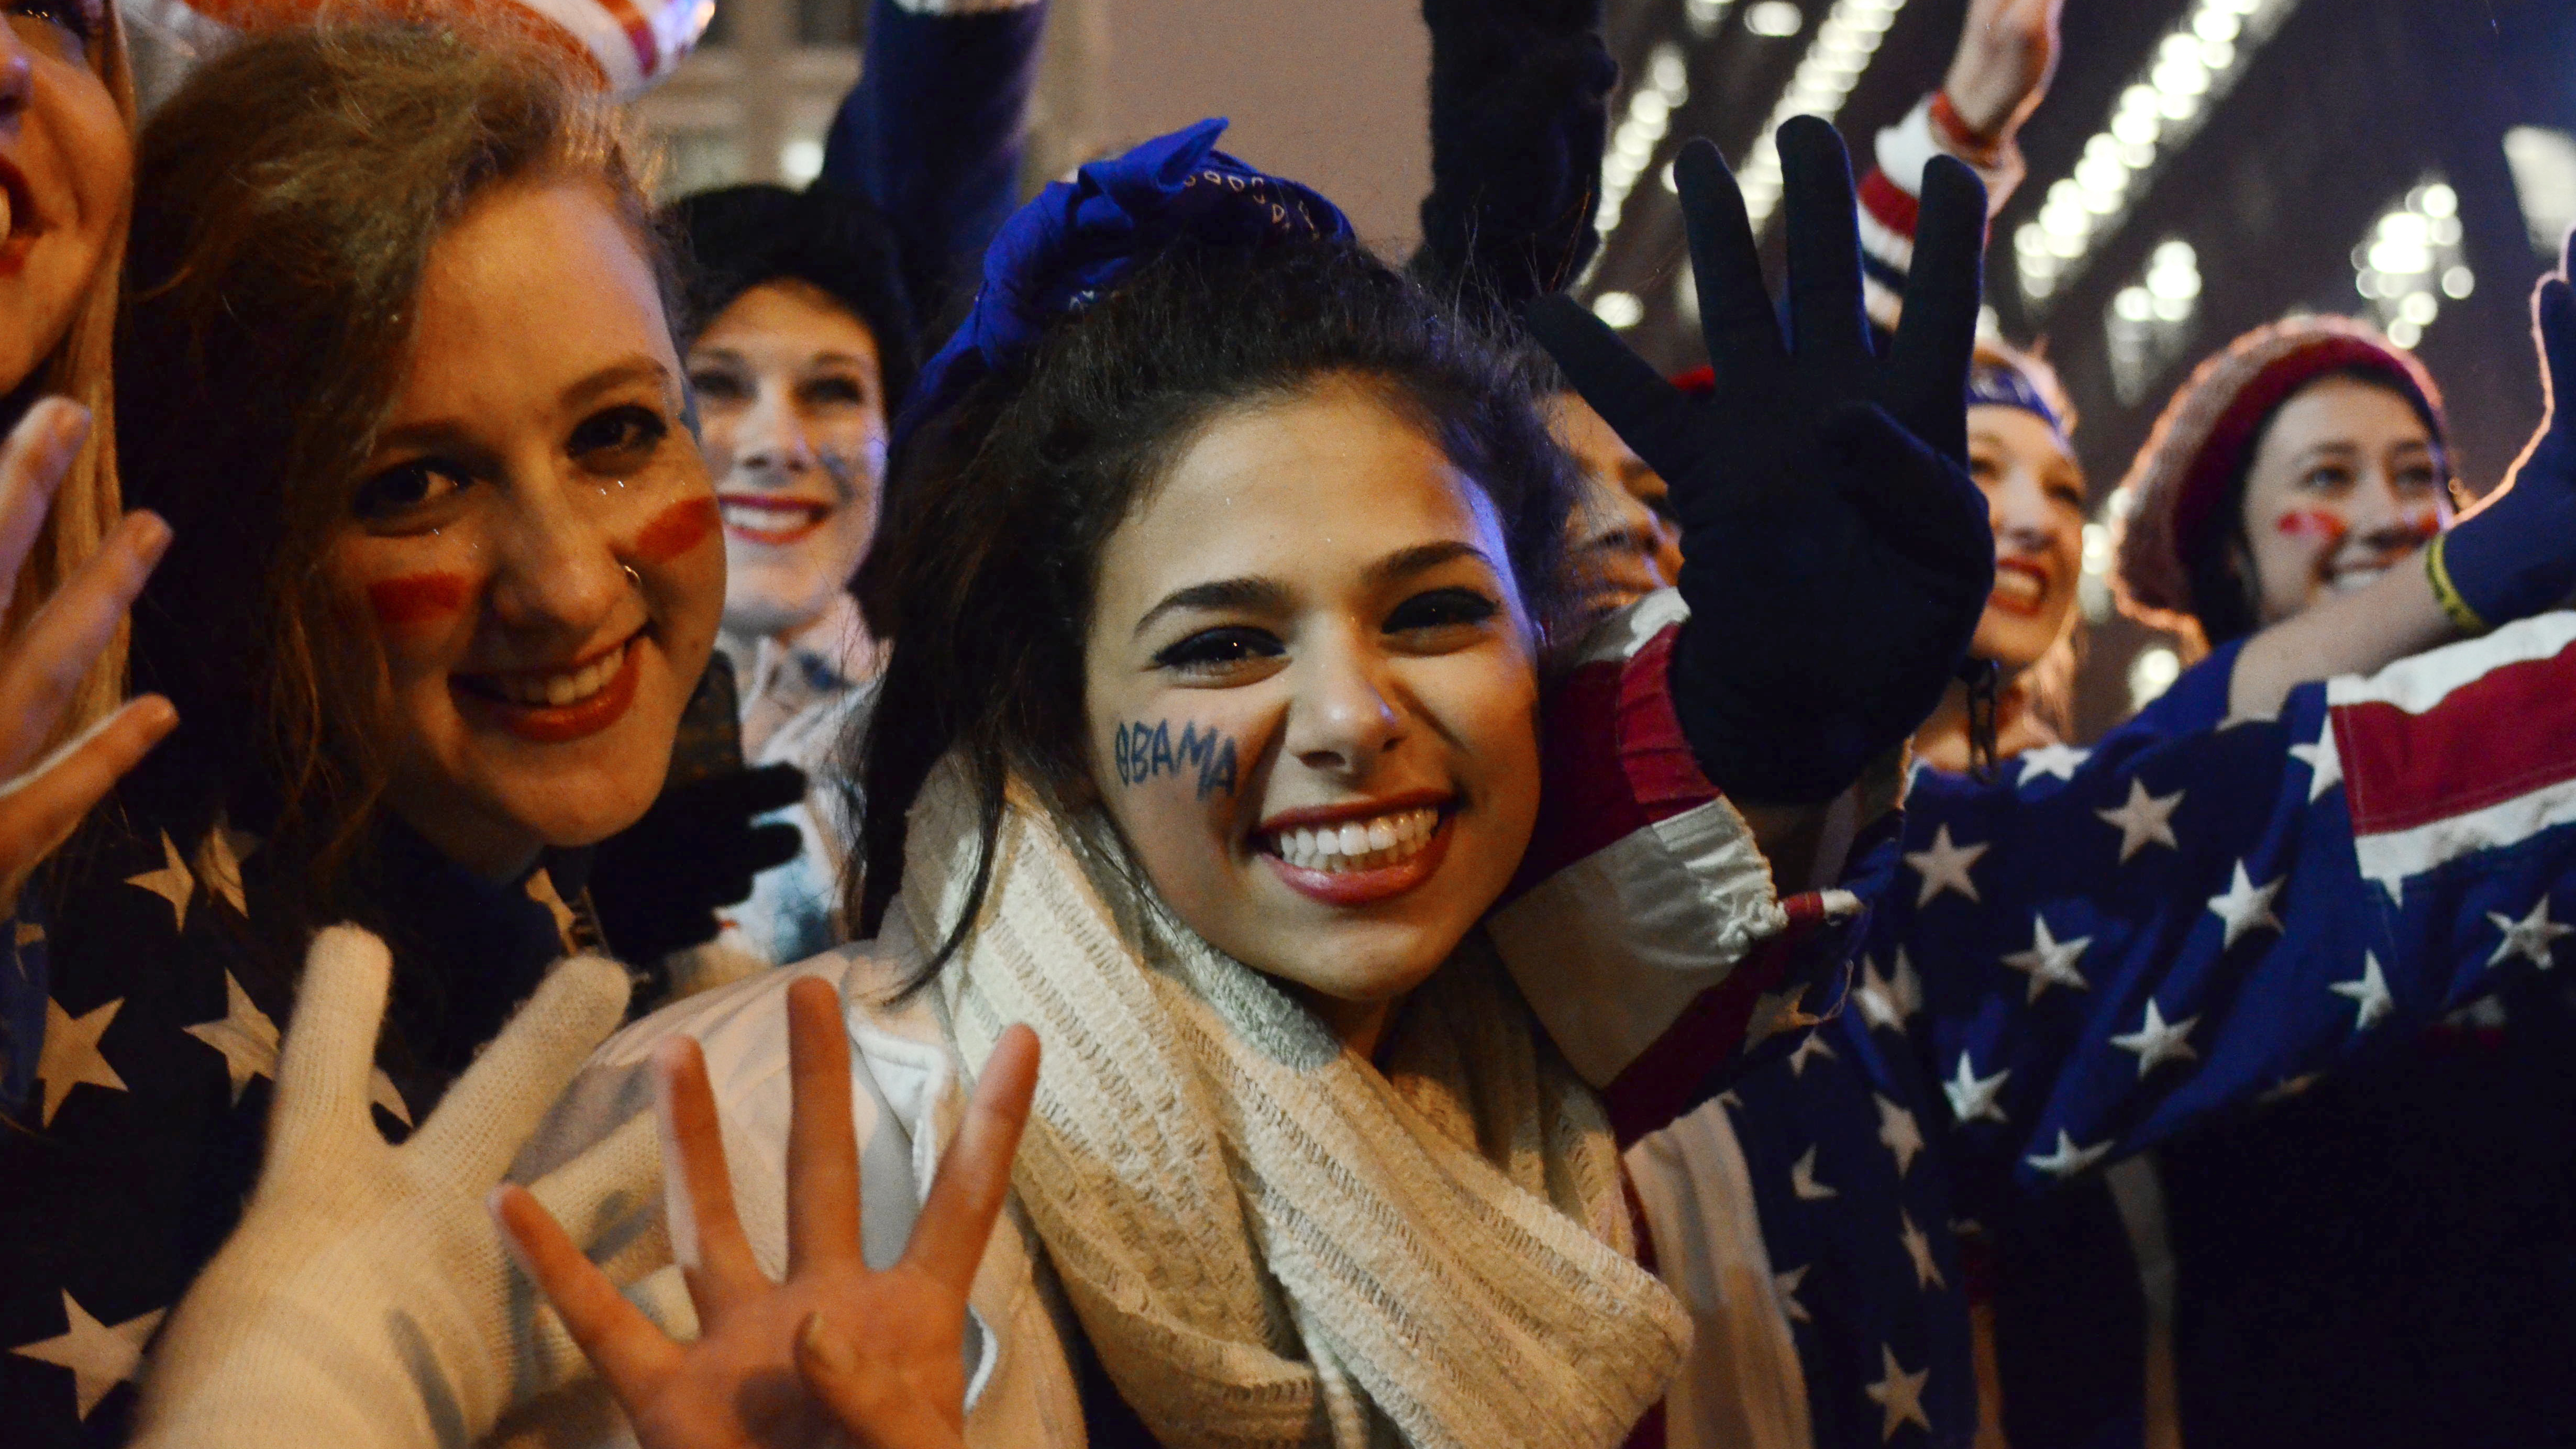 Young women celebrate election results in 2012. (Photo by AFP/AFP/Getty Images)